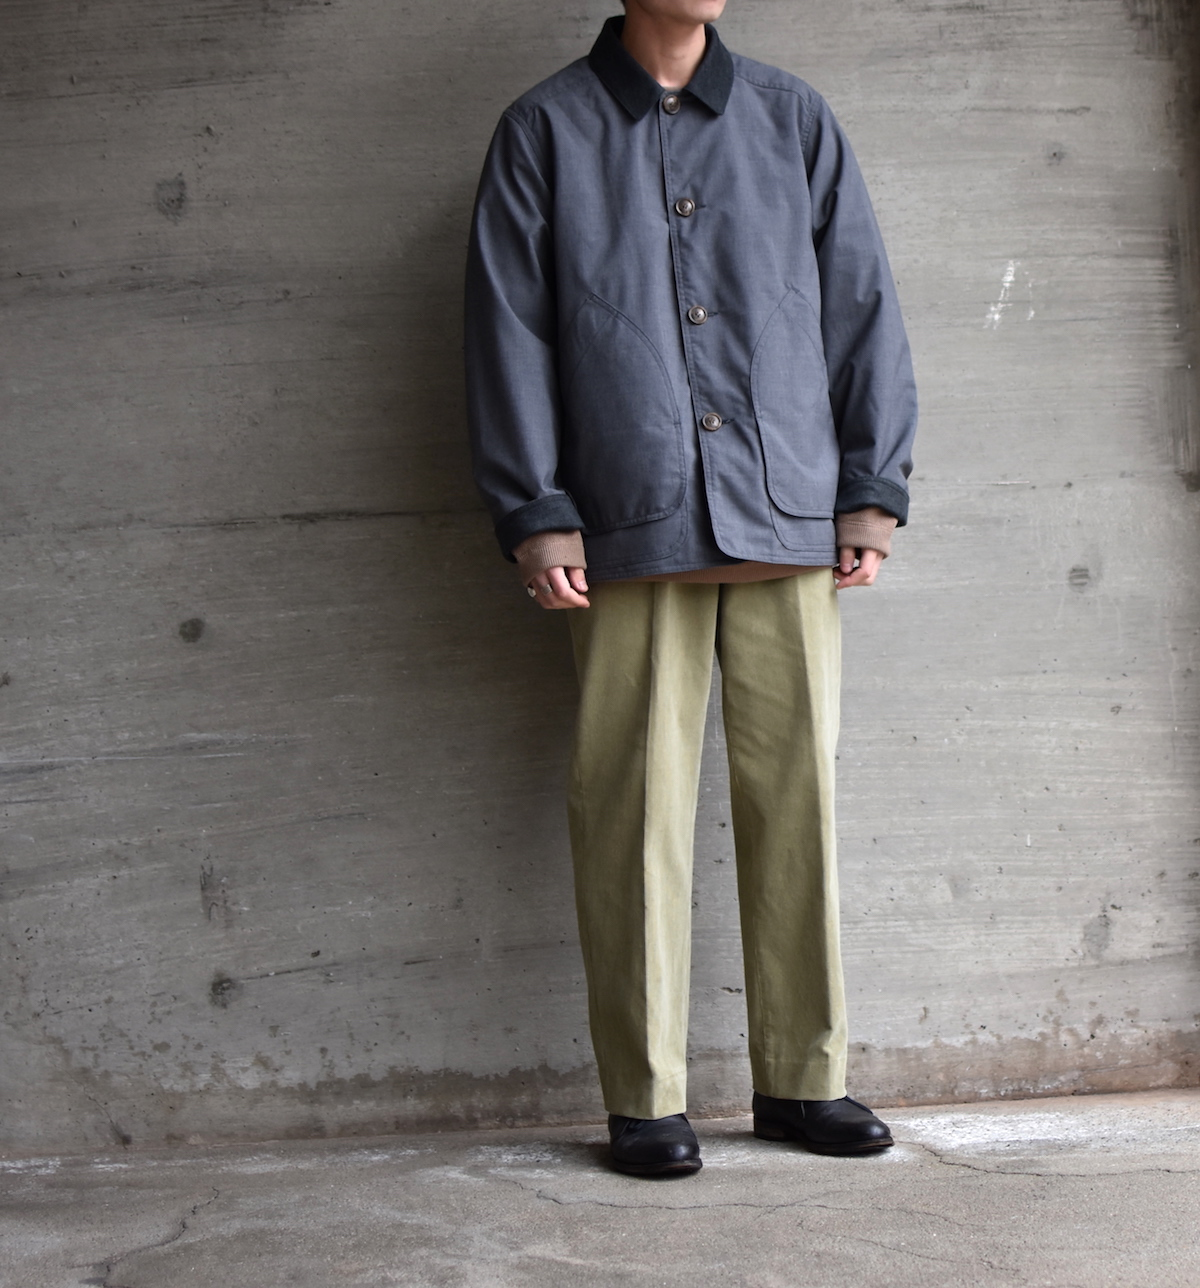 BROWN by 2-tacs 「 RALLY  / CHARCOAL 」